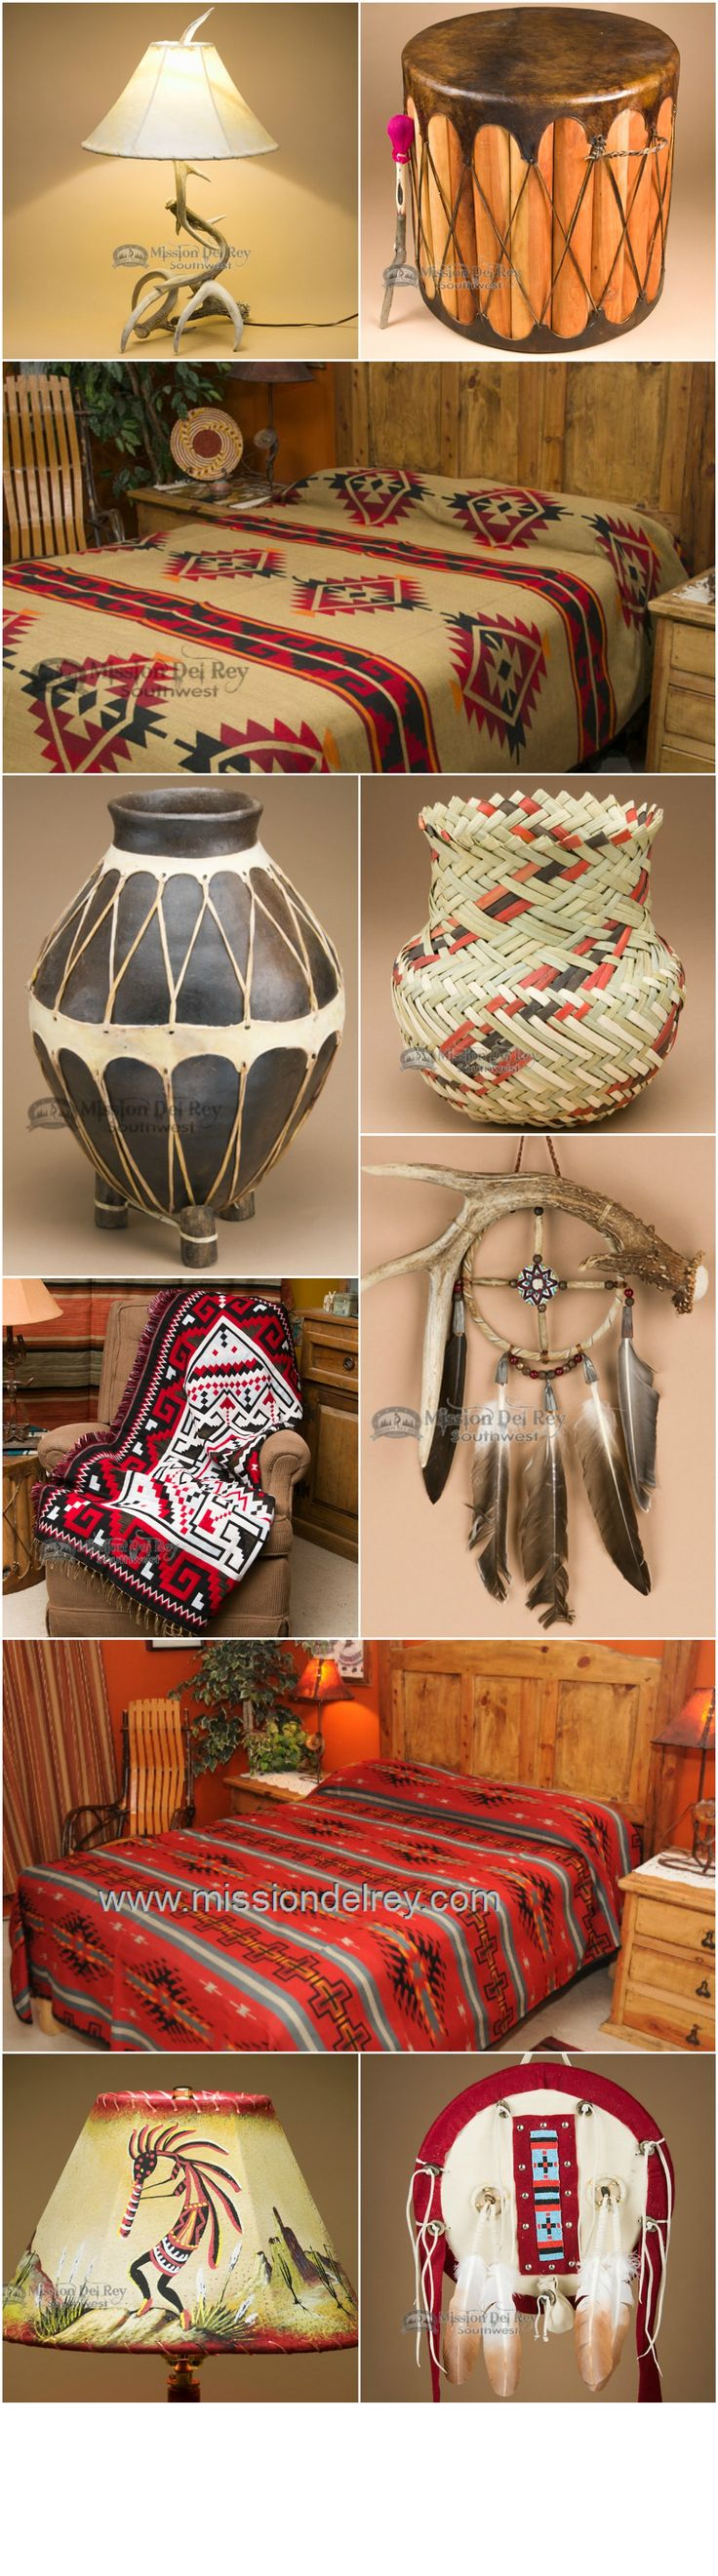 Find the perfect home decor accents for your rustic, southwestern, or western home.  Choose from a wide variety of western bedding, Native American pottery, southwestern baskets, rustic lamps and Native American dream catchers for southwest home decor.  Visit us at http://www.missiondelrey.com/